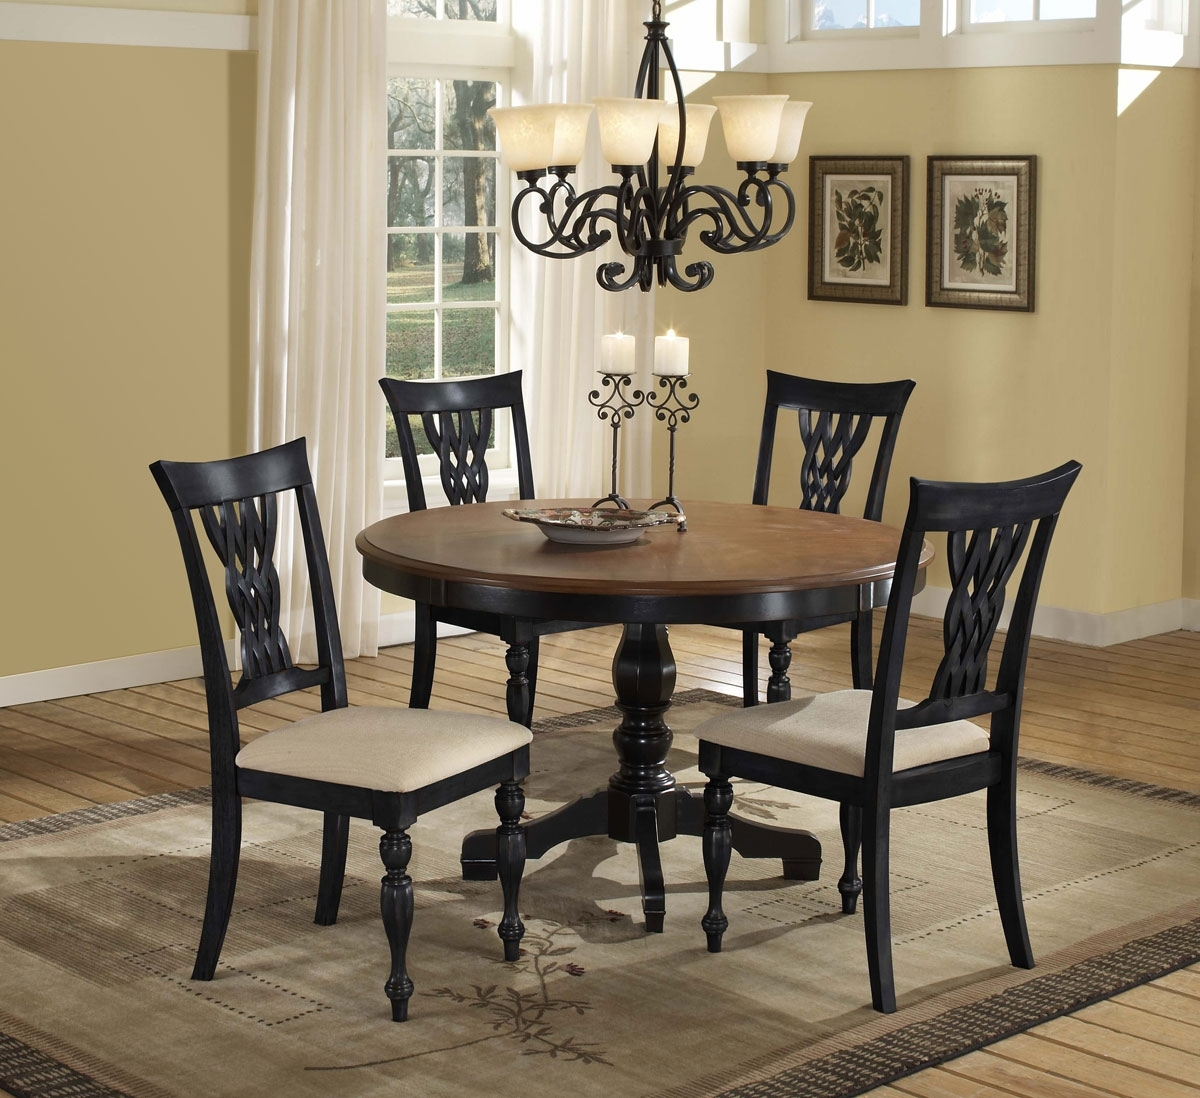 Trendy Hillsdale Embassy Round Pedestal Dining Table – Rubbed Black For Dark Round Dining Tables (View 24 of 25)